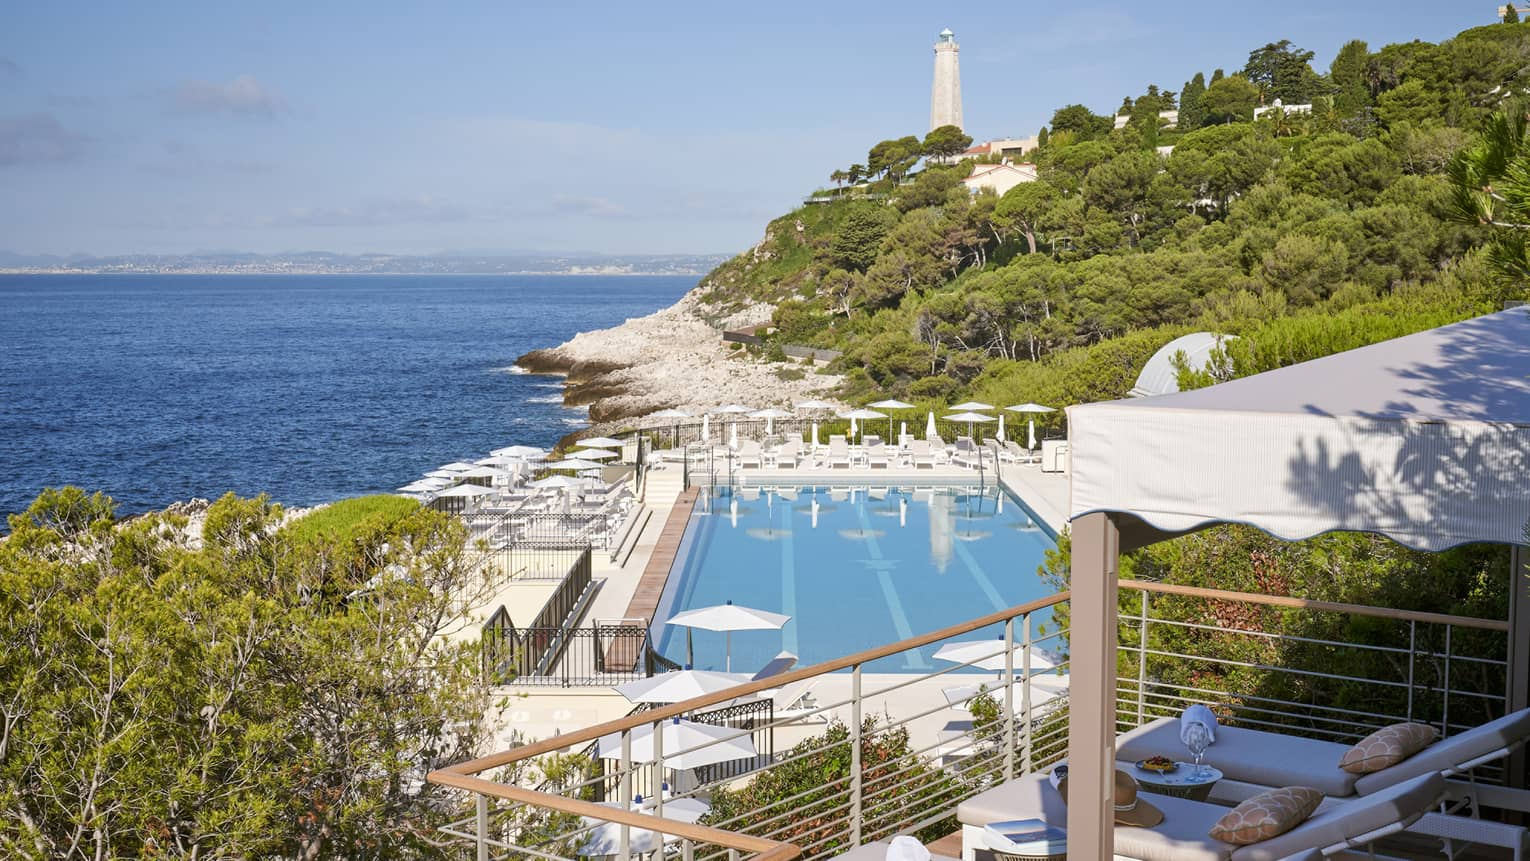 View from terrace of Club Dauphin pool, Mediterranean, green hillside and lighthouse